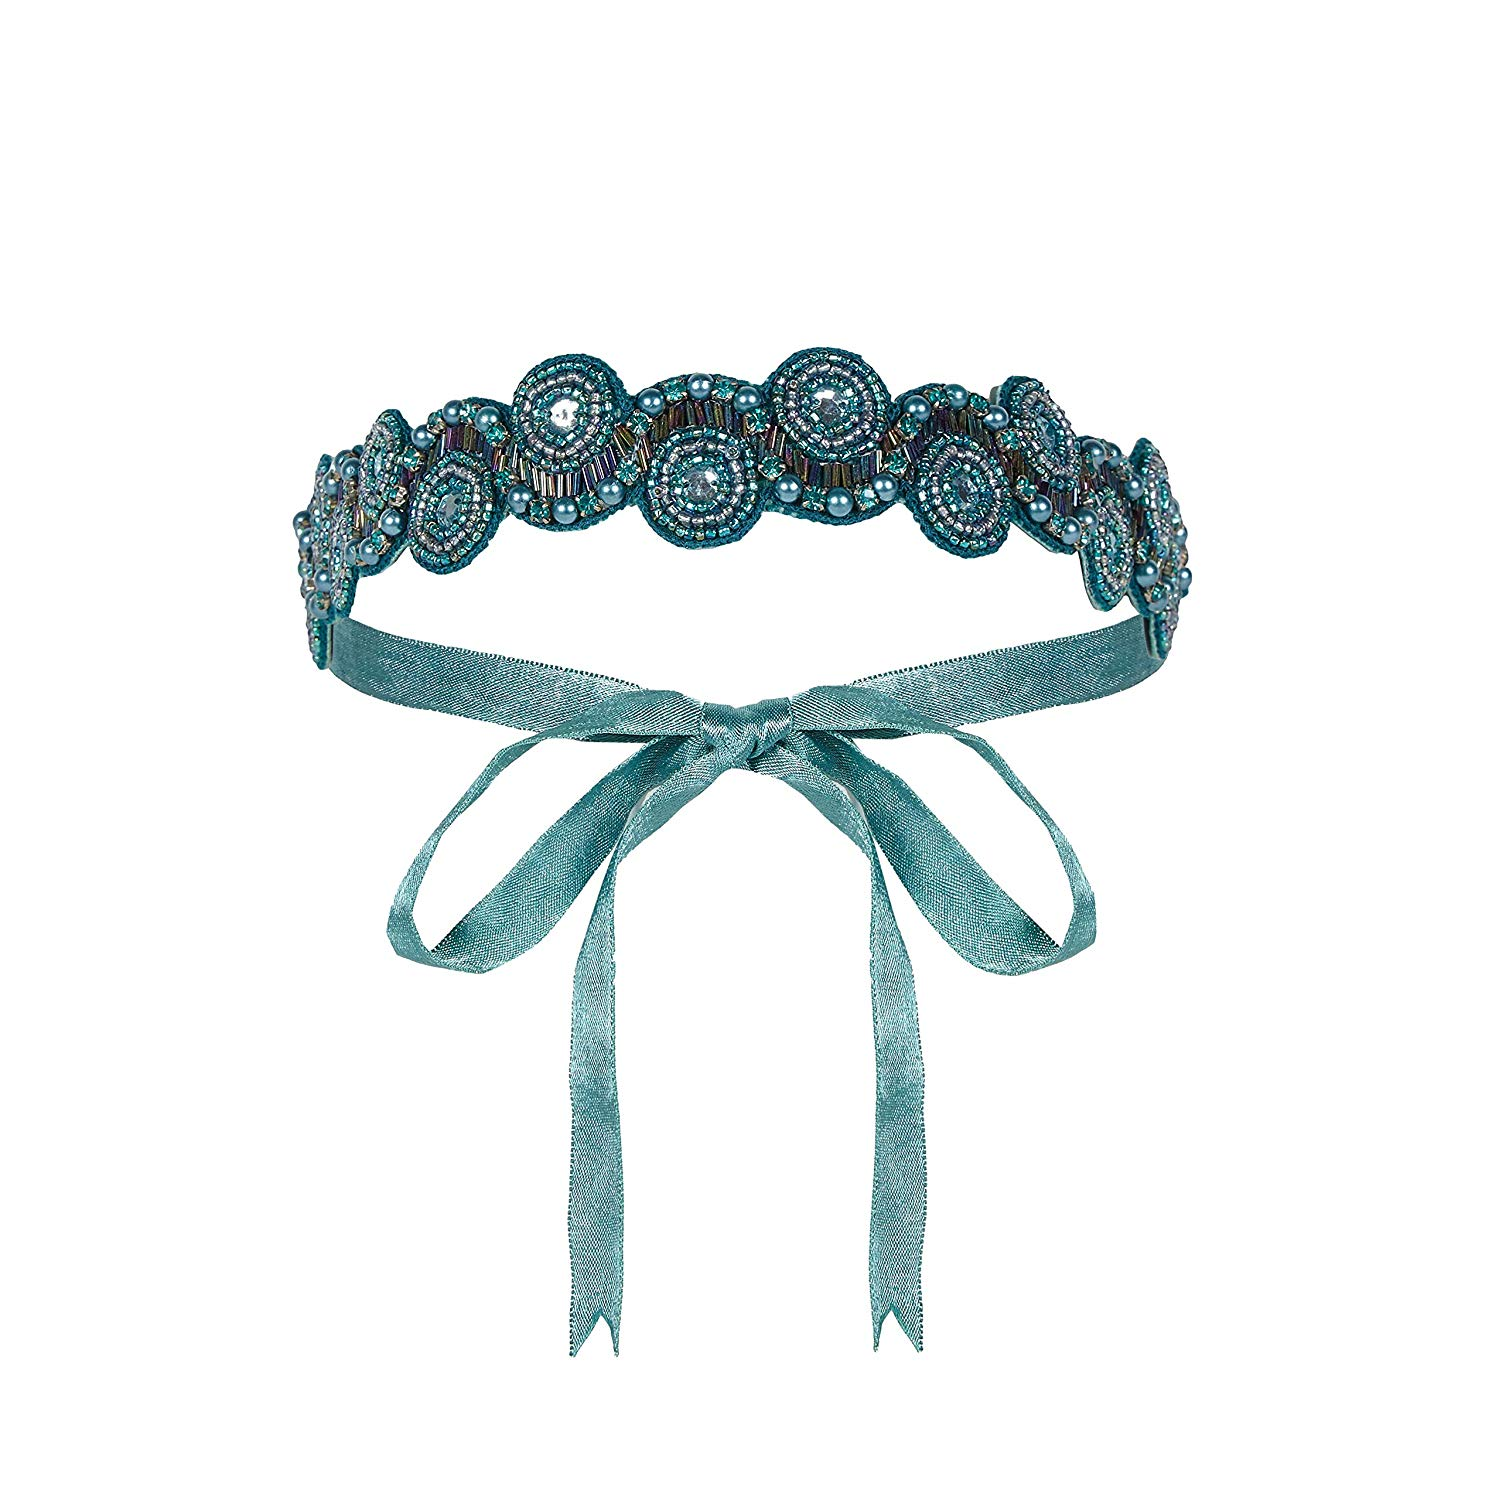 Gatsbylady London - Eliza Vintage Inspired Hand Embellished Flapper Headband - Teal, AED99